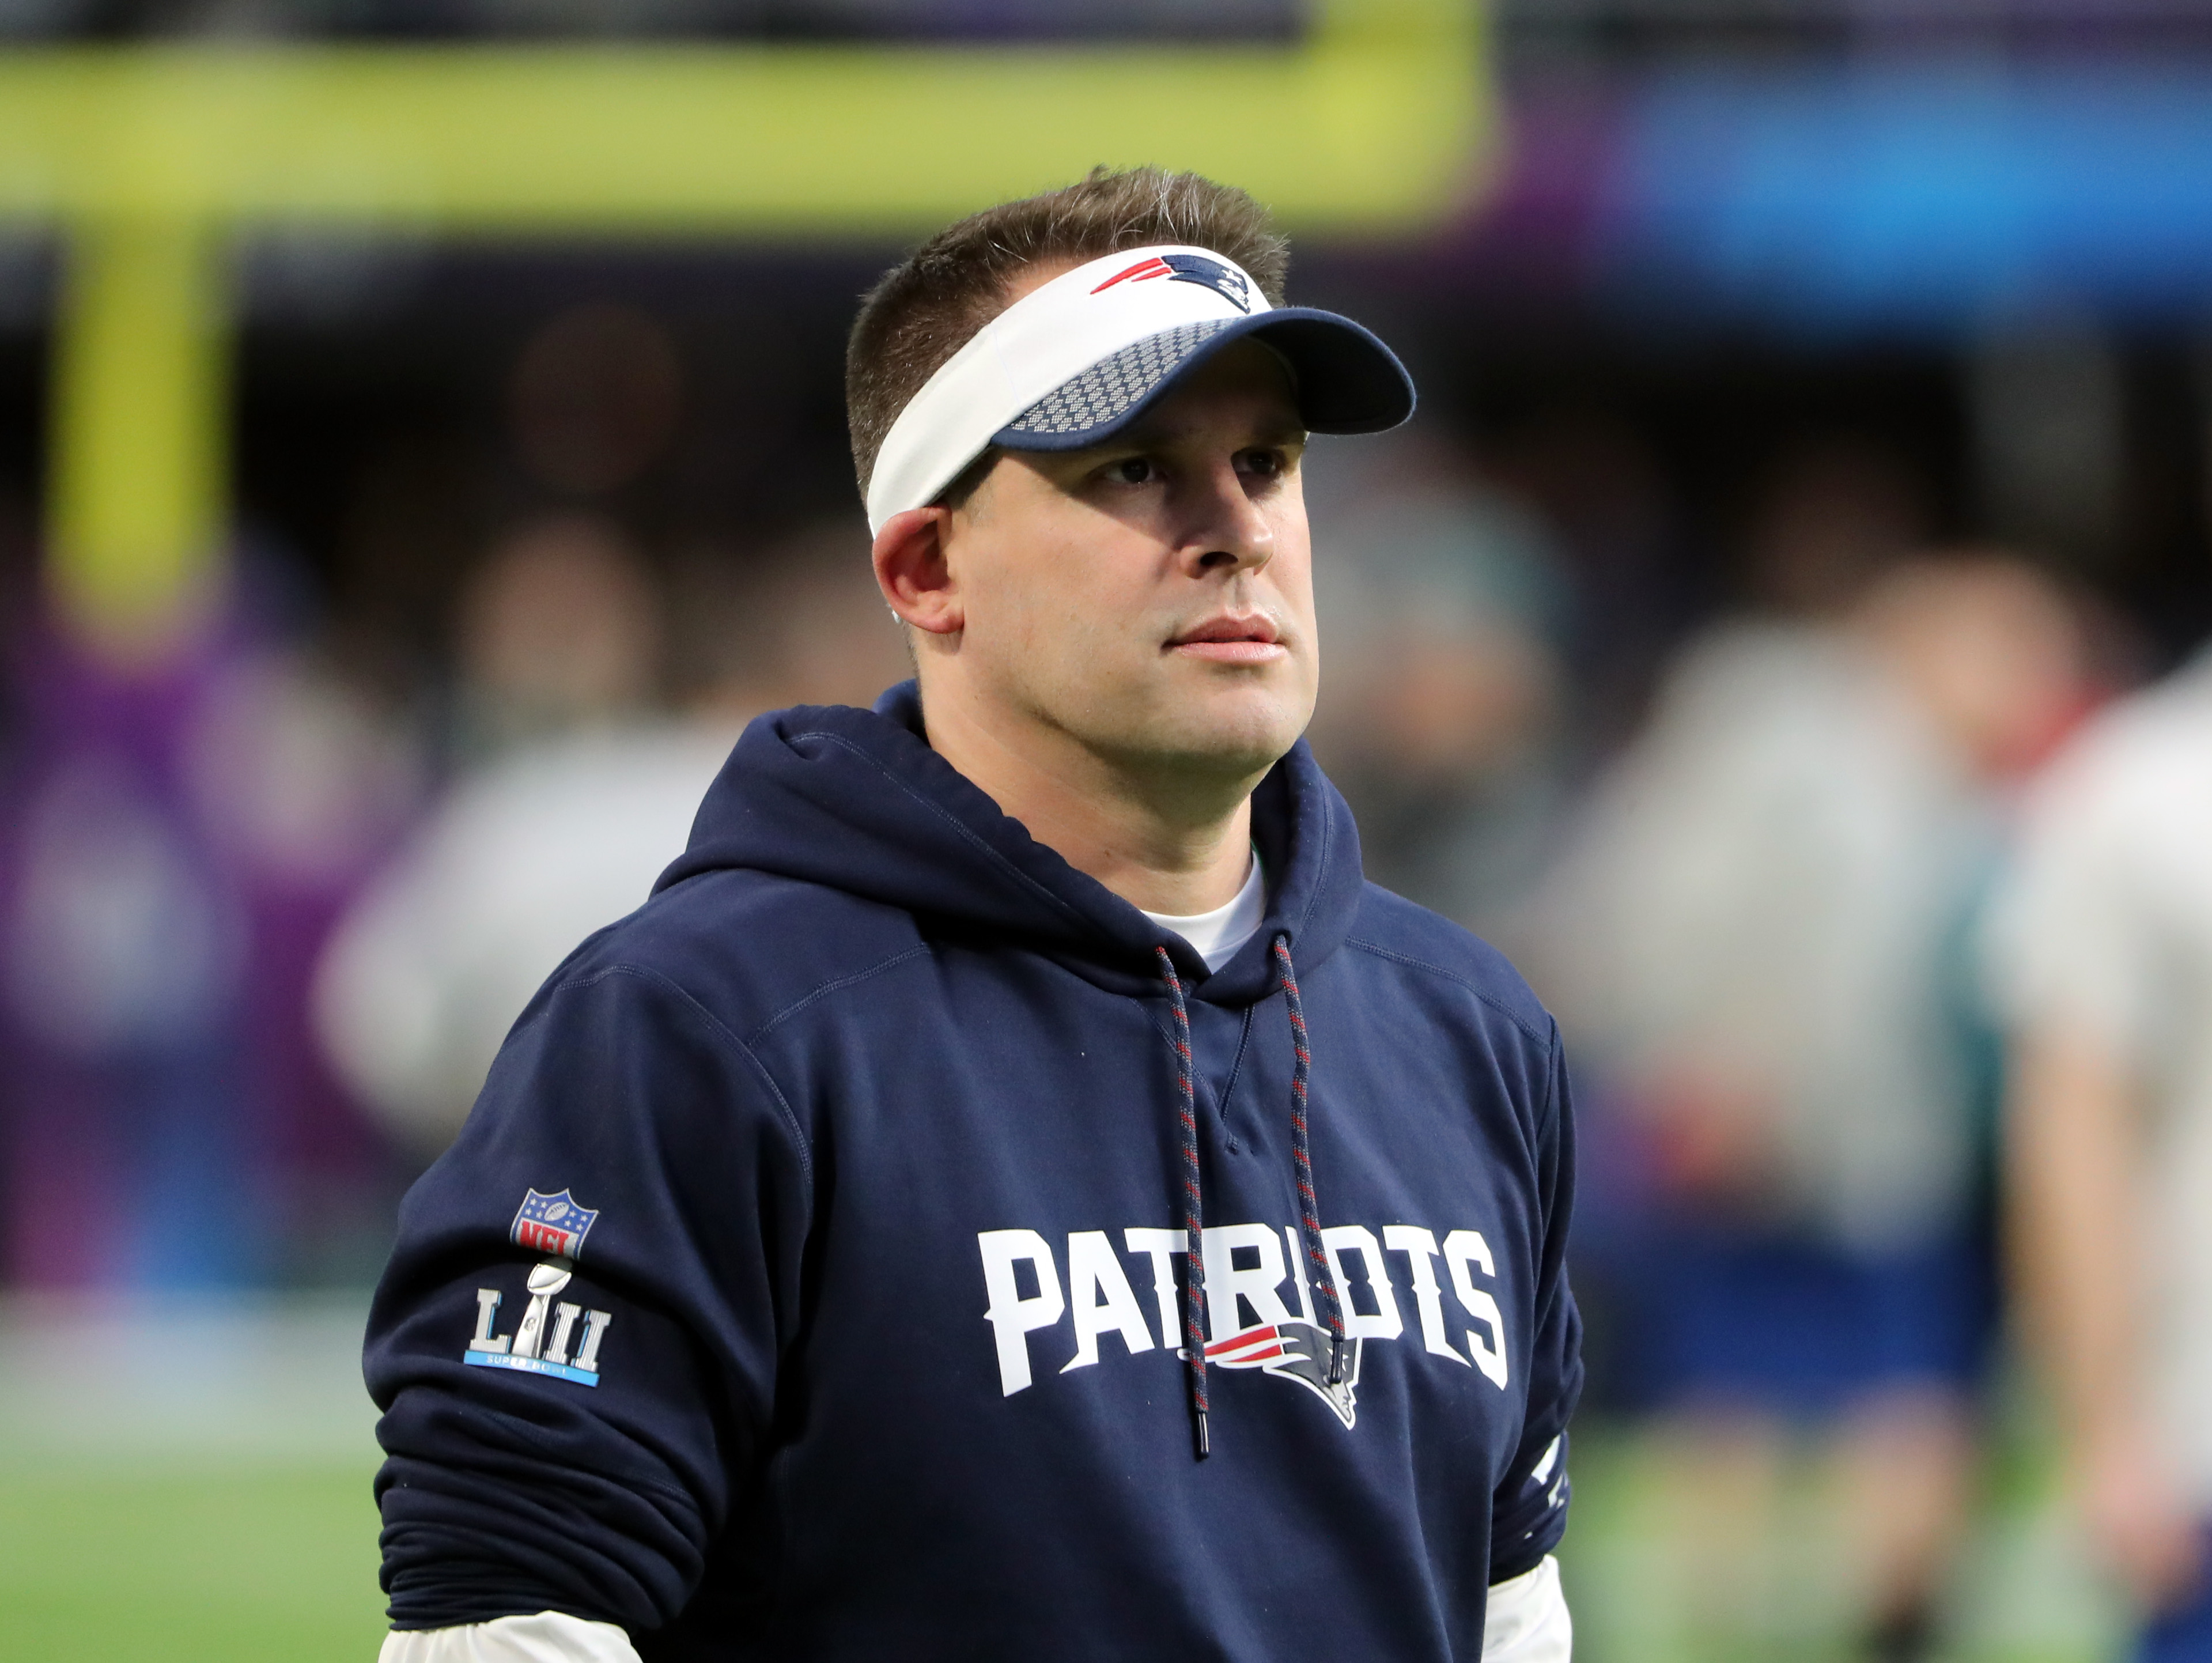 Colts announce Josh McDaniels hired as new coach, Patriots purge officially underway